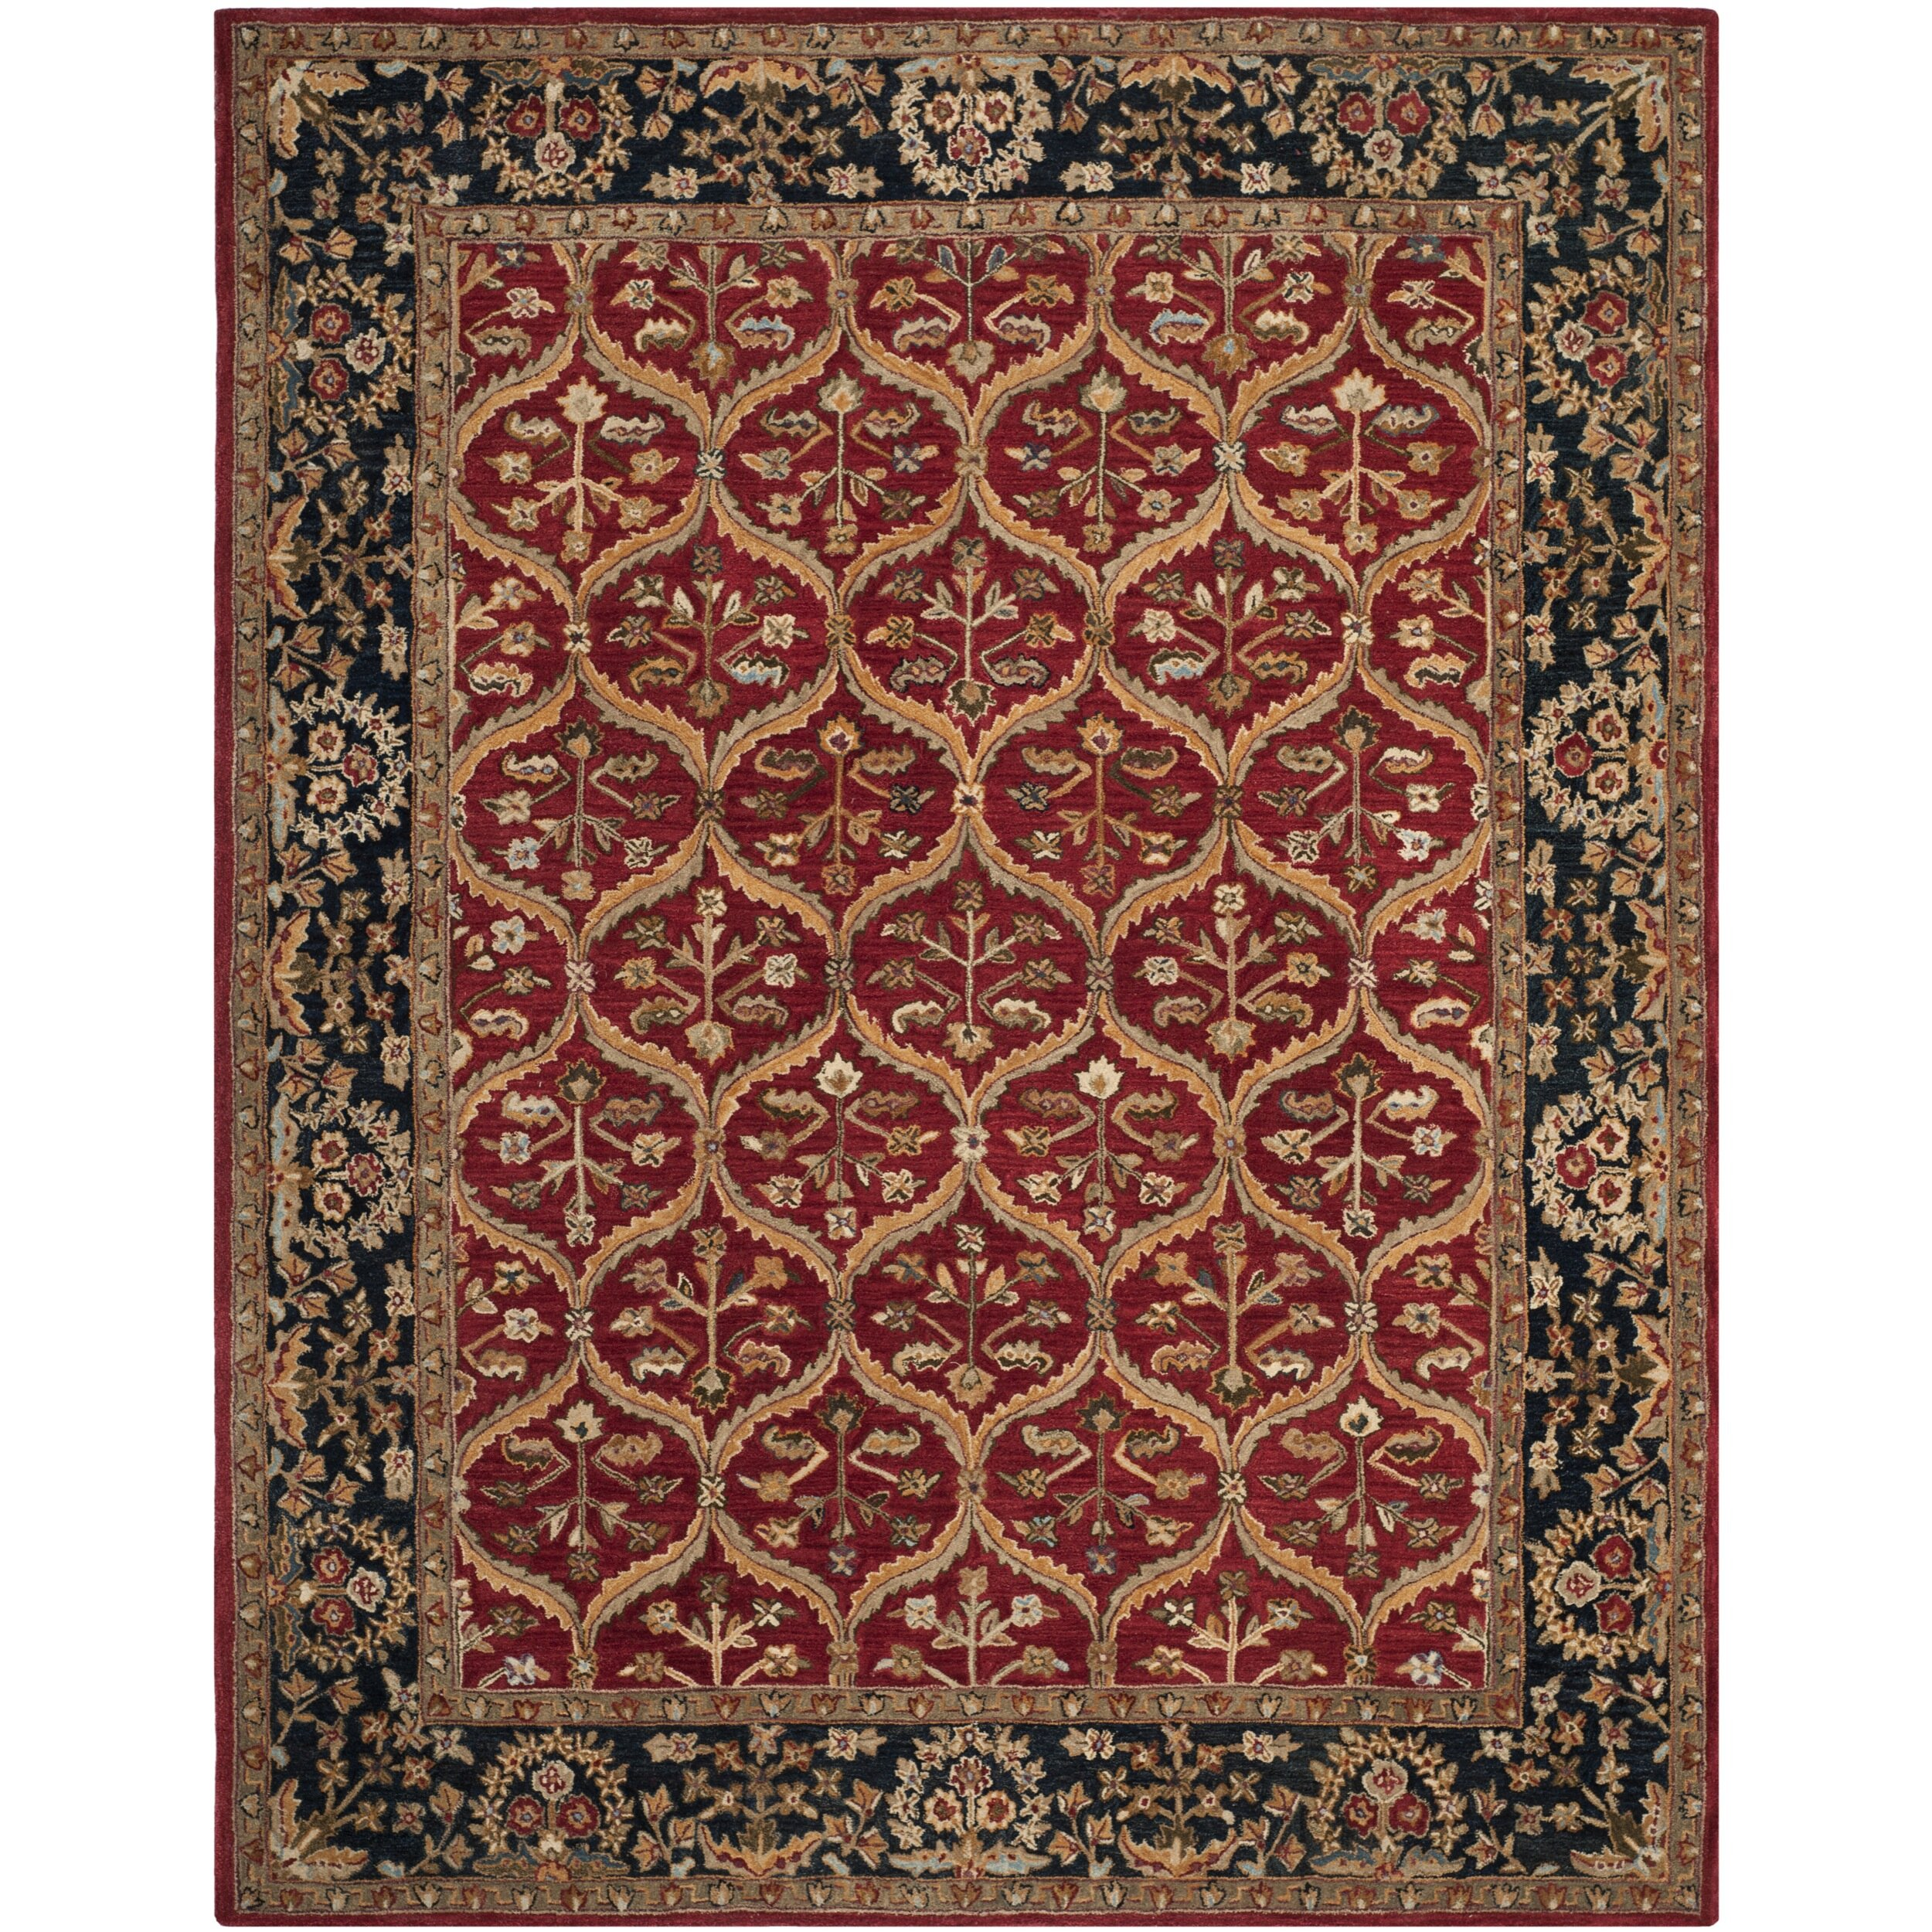 Safavieh Anatolia Red Area Rug amp Reviews Wayfair : Safavieh Anatolia Red Area Rug AN610A from www.wayfair.com size 2500 x 2500 jpeg 2434kB